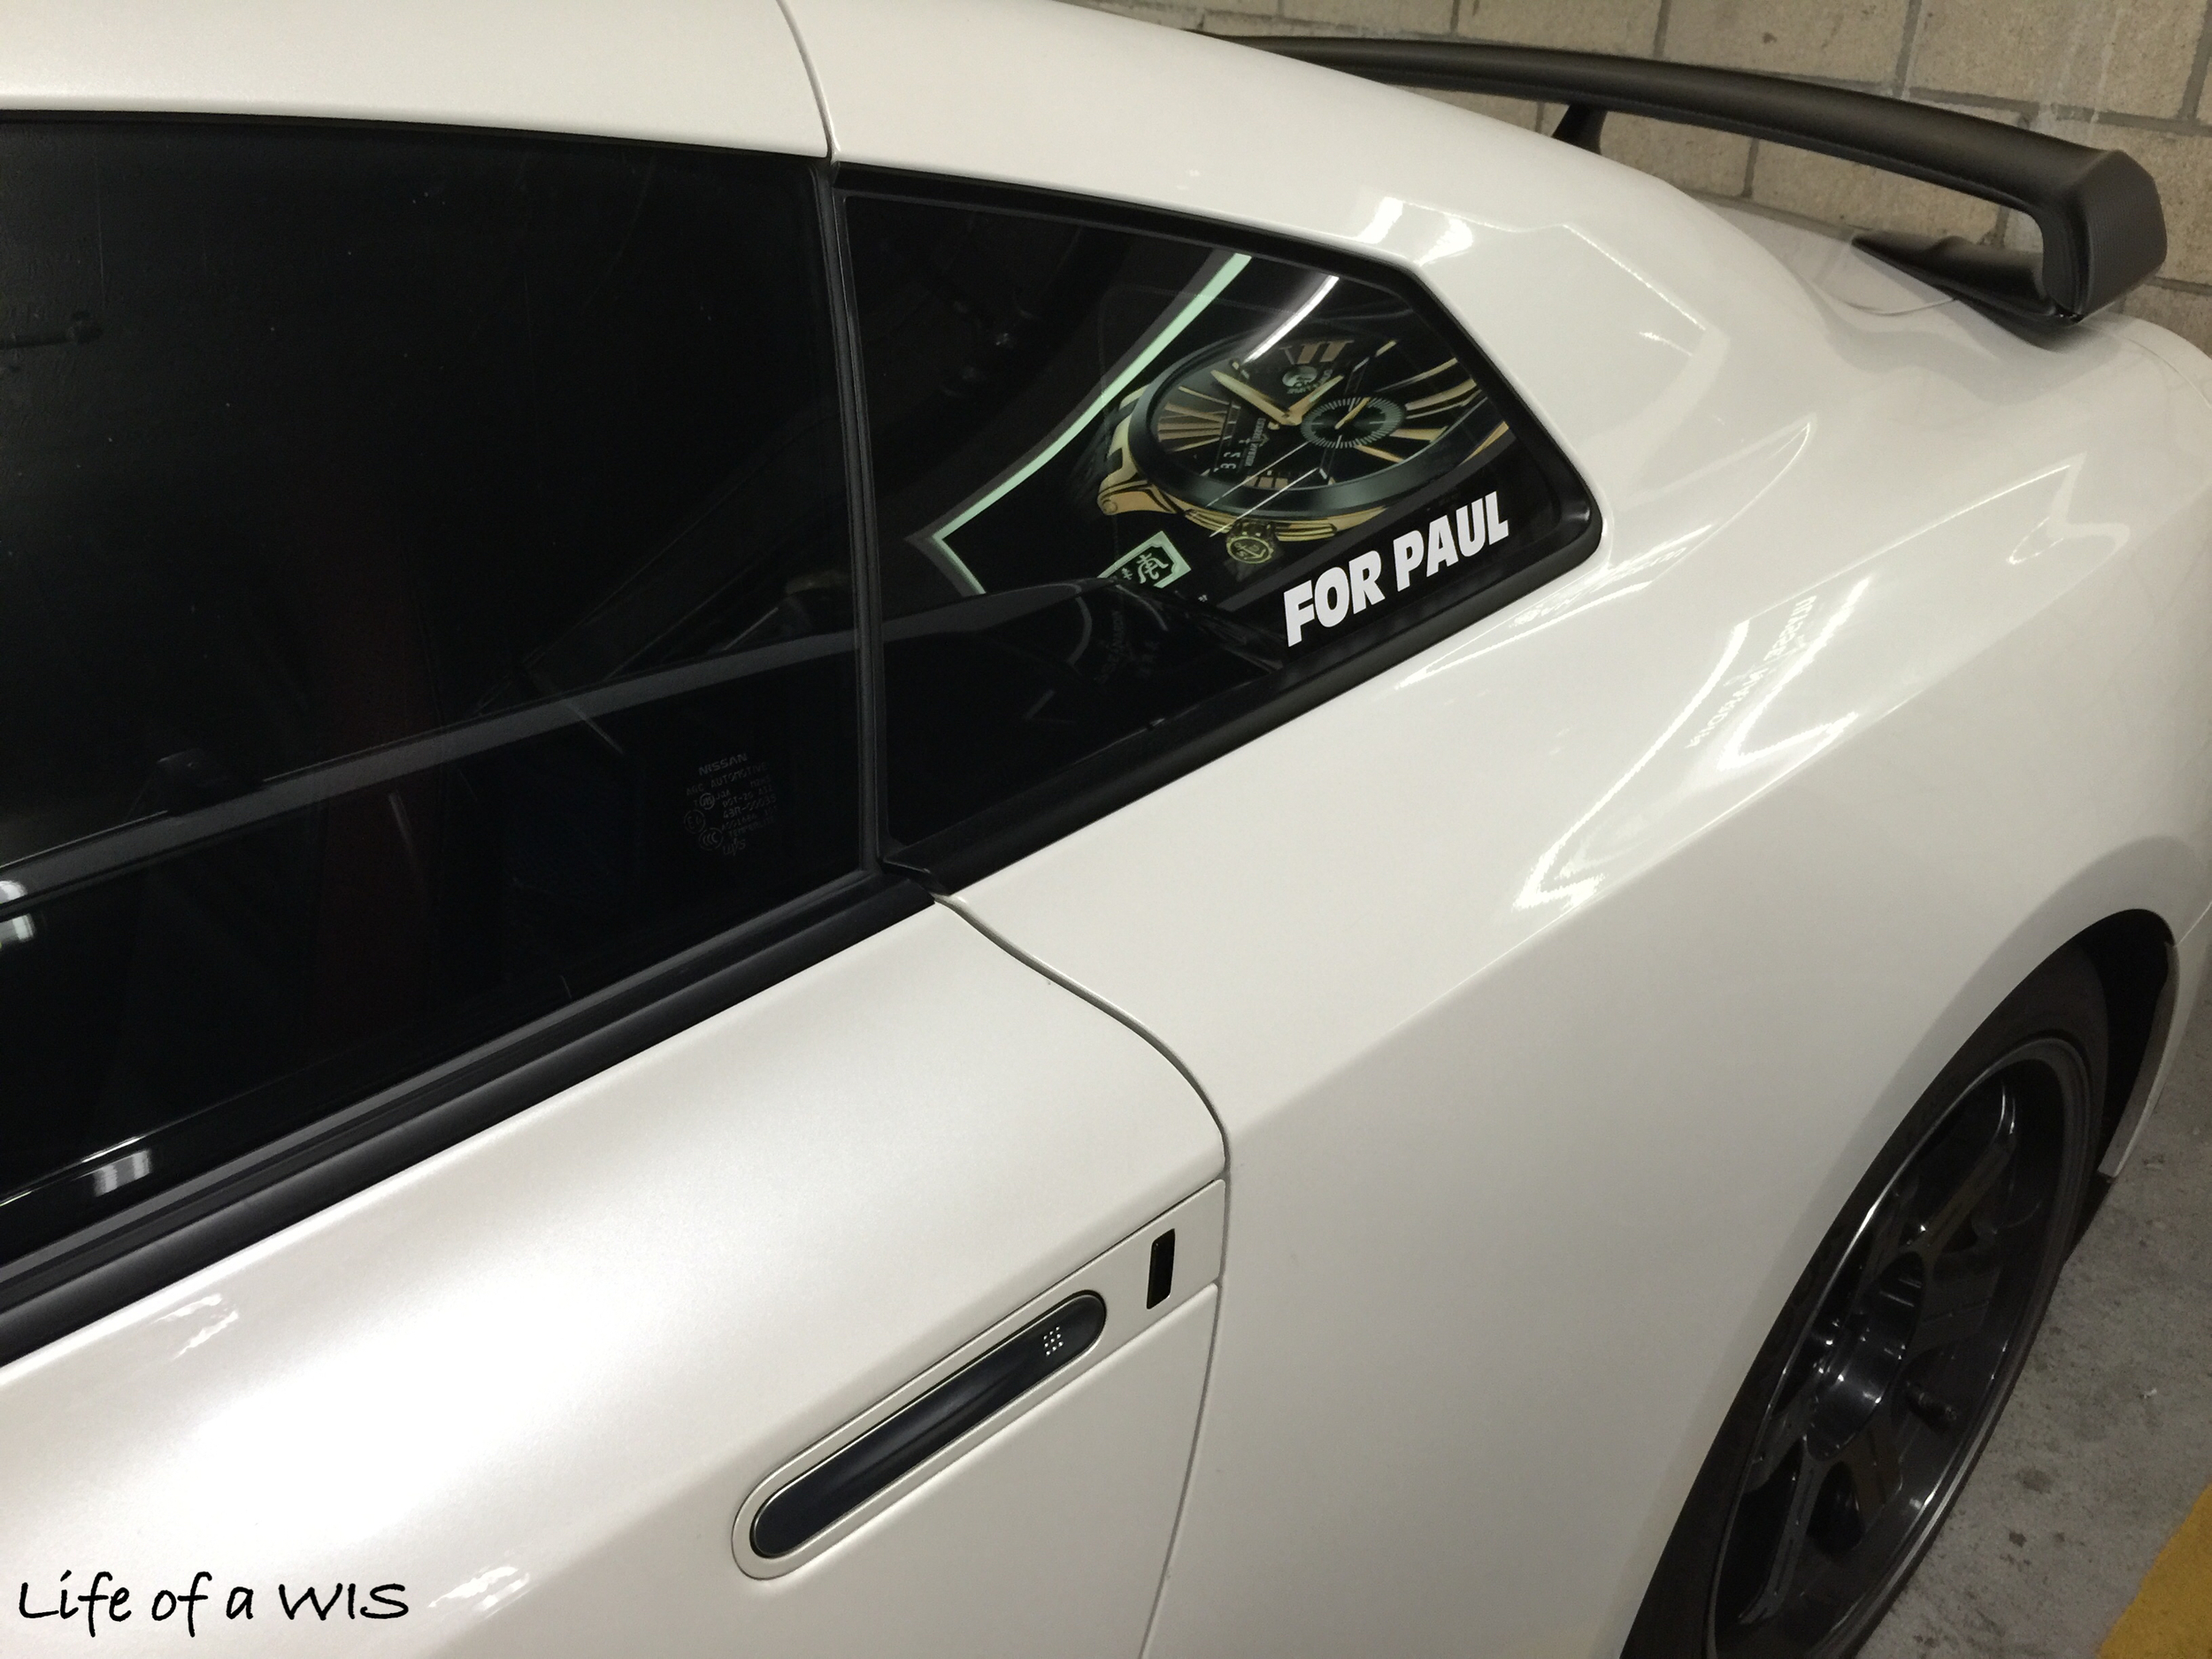 FOR PAUL decal on a GT-R, in memory of the late Paul Walker.